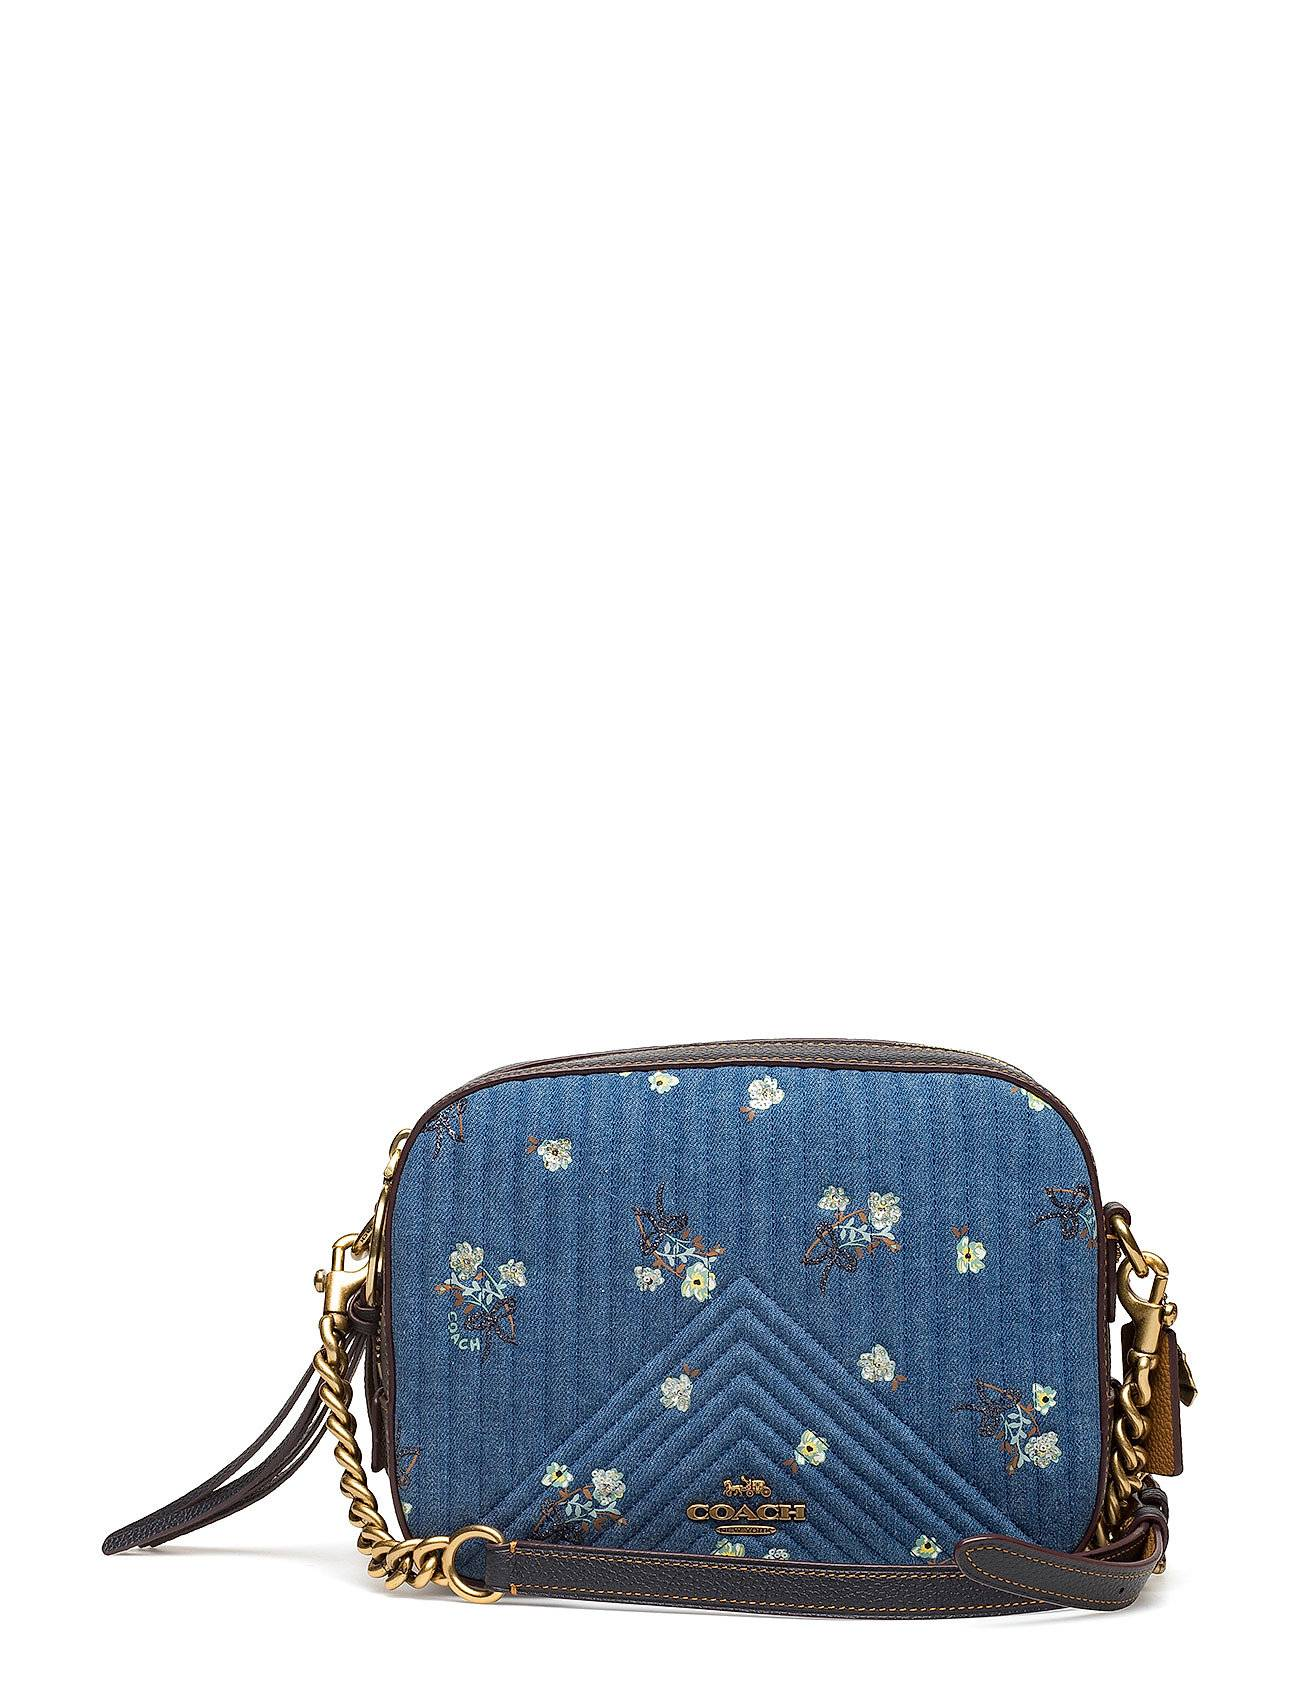 Coach Quilted Denim Floral Bow Print Camera Bag